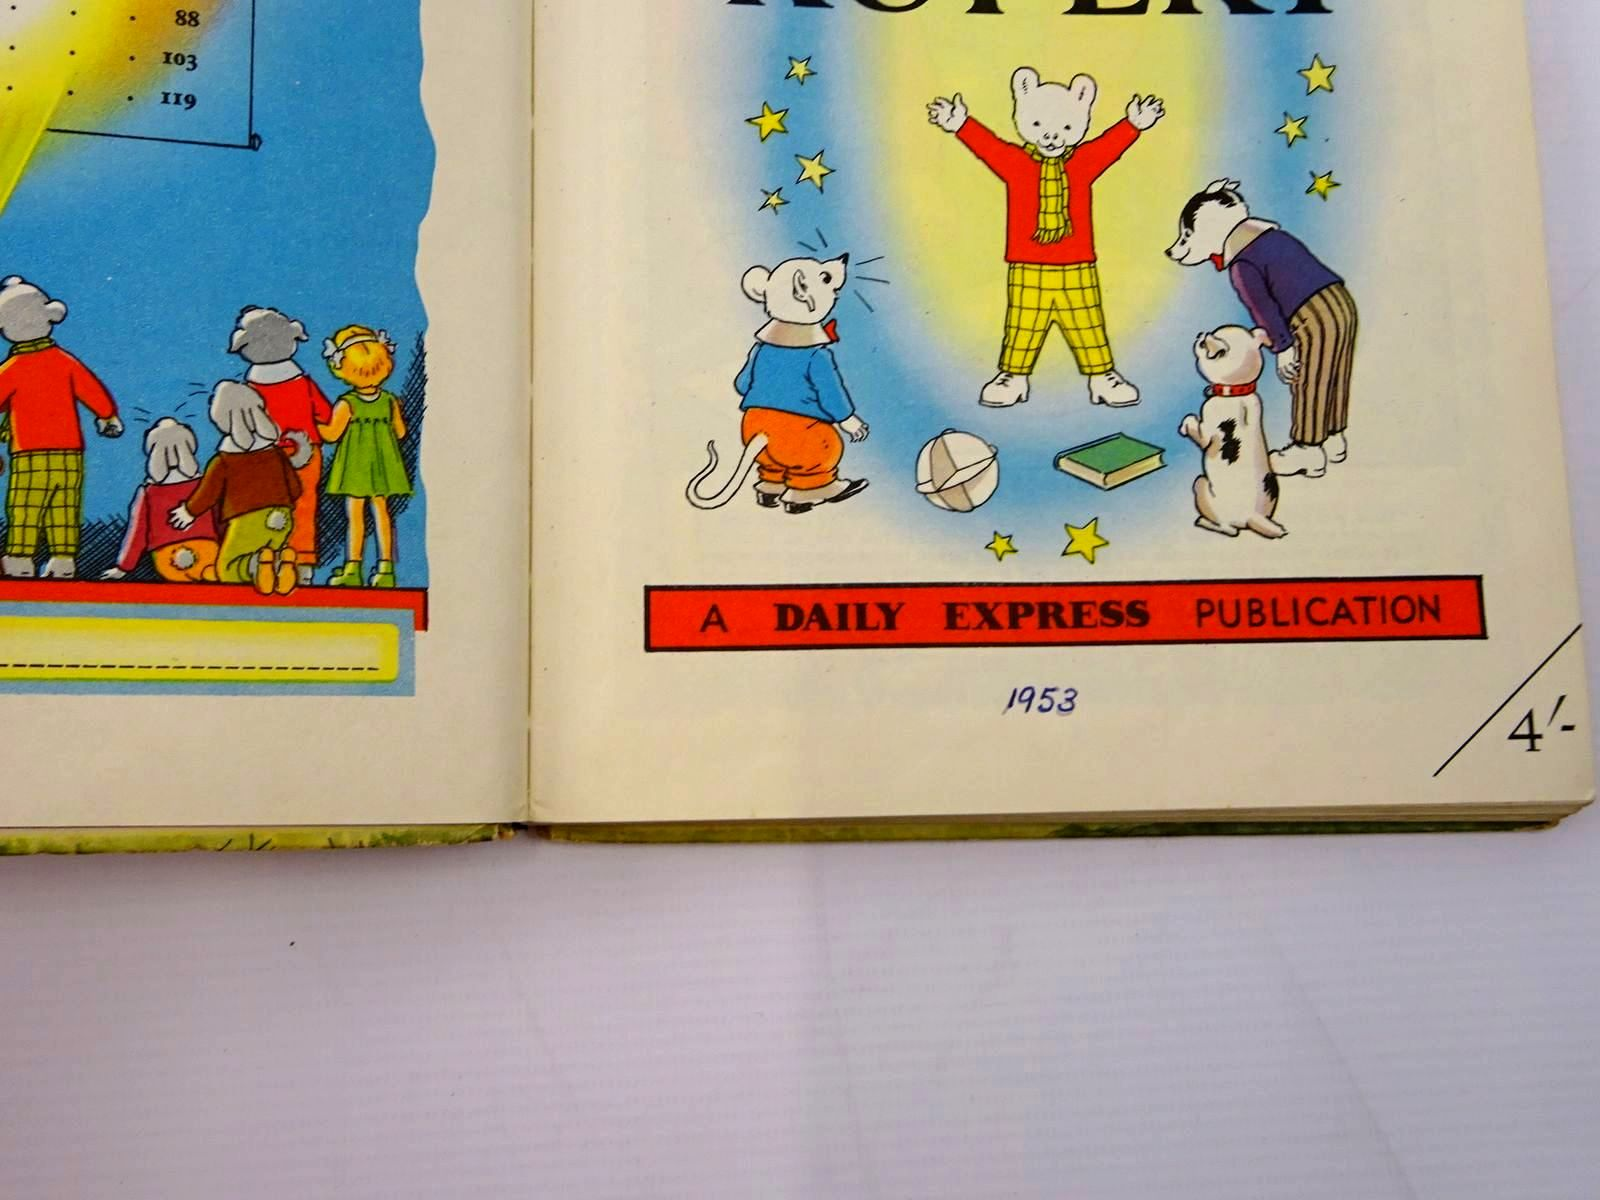 Photo of RUPERT ANNUAL 1953 - MORE ADVENTURES OF RUPERT written by Bestall, Alfred illustrated by Bestall, Alfred published by Daily Express (STOCK CODE: 2131075)  for sale by Stella & Rose's Books